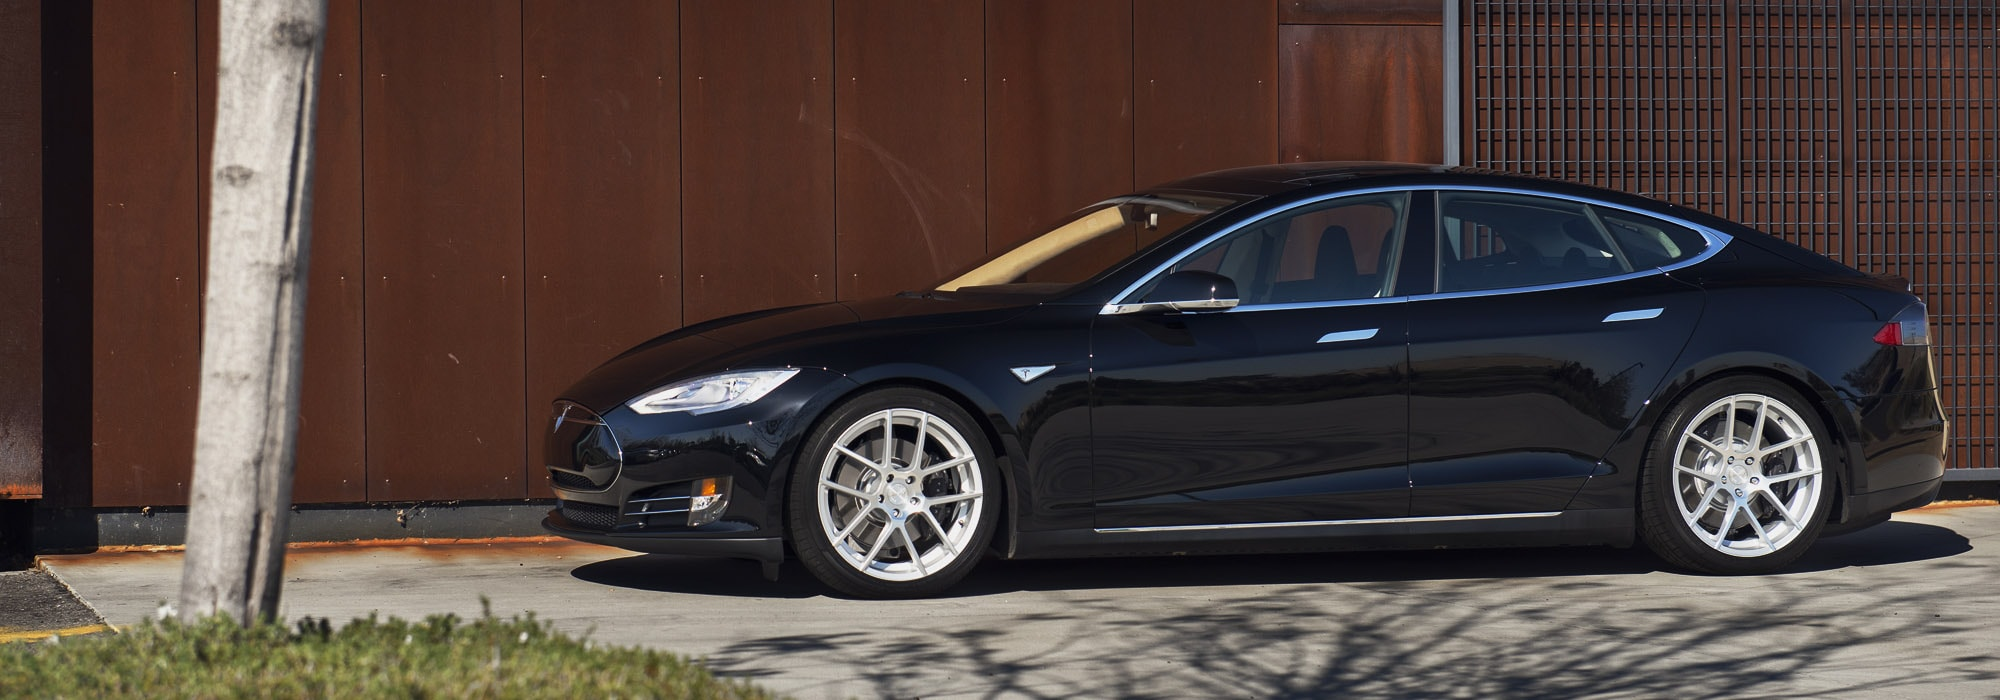 black tesla model s p85d 20x8.5 20x10 m510 staggered concave split five spoke wheels rims satin silver side